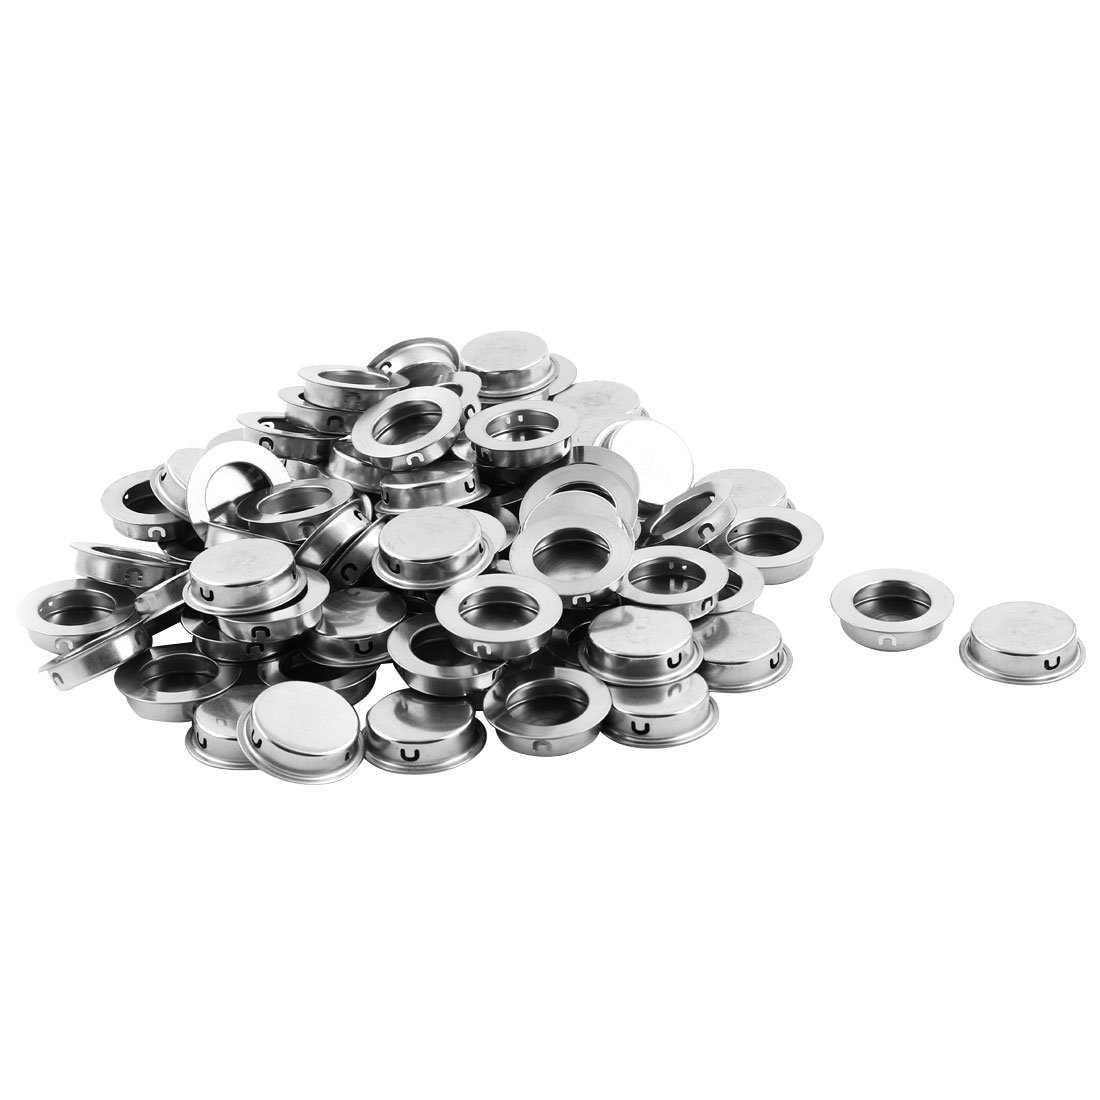 uxcell Stainless Steel Drawer Closet Embedded Round Flush Pull Handles 35mm Dia 80 PCS